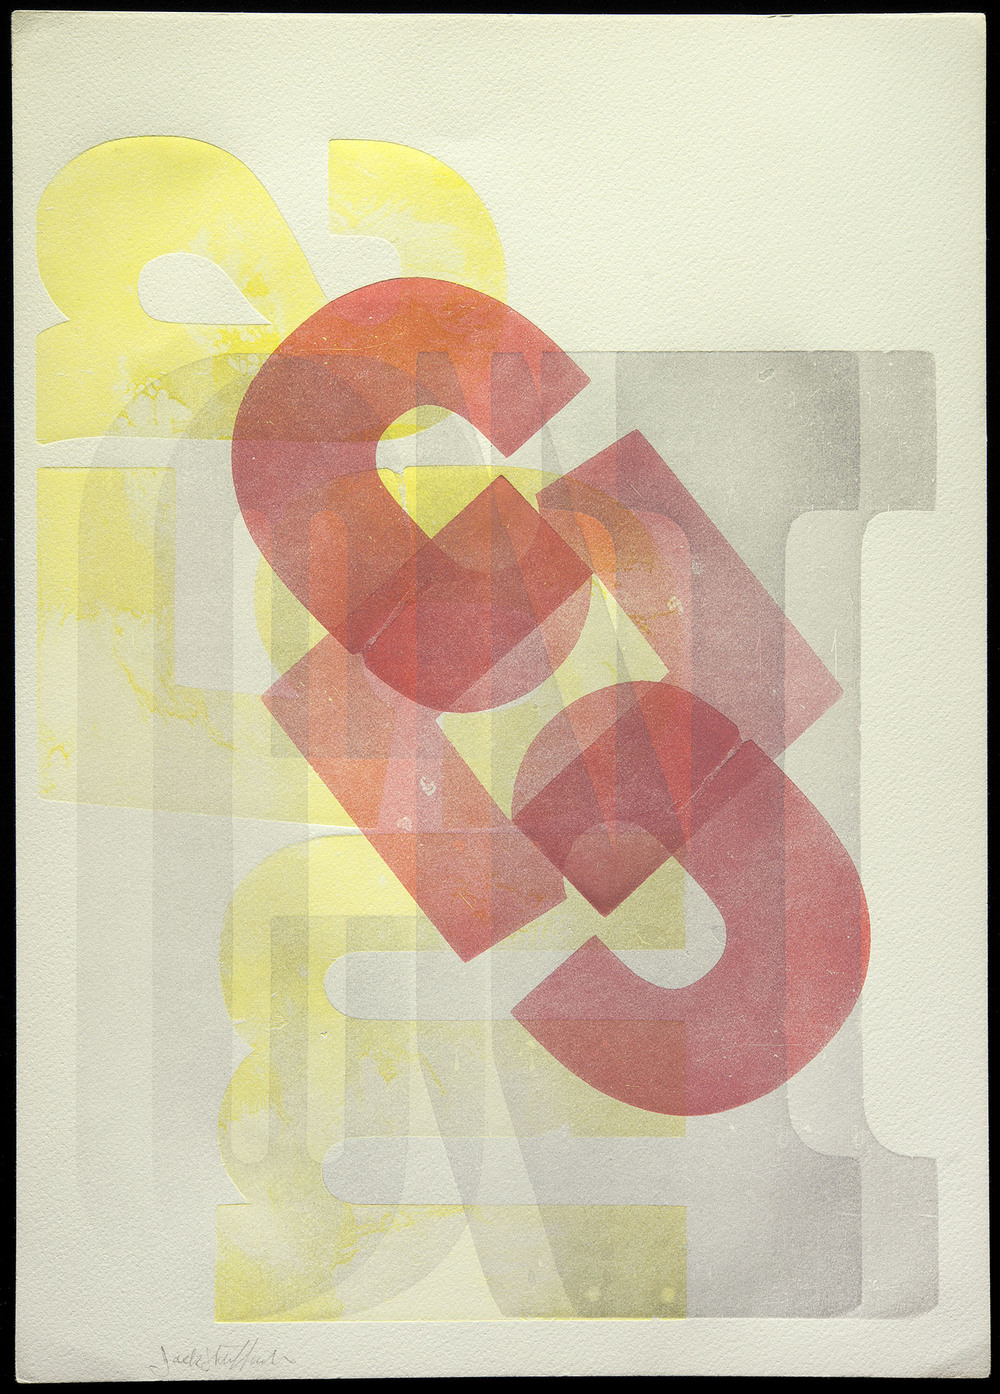 Jack Stauffacher, wood type print, San Francisco, no date, 25.4 x 35.5 cm